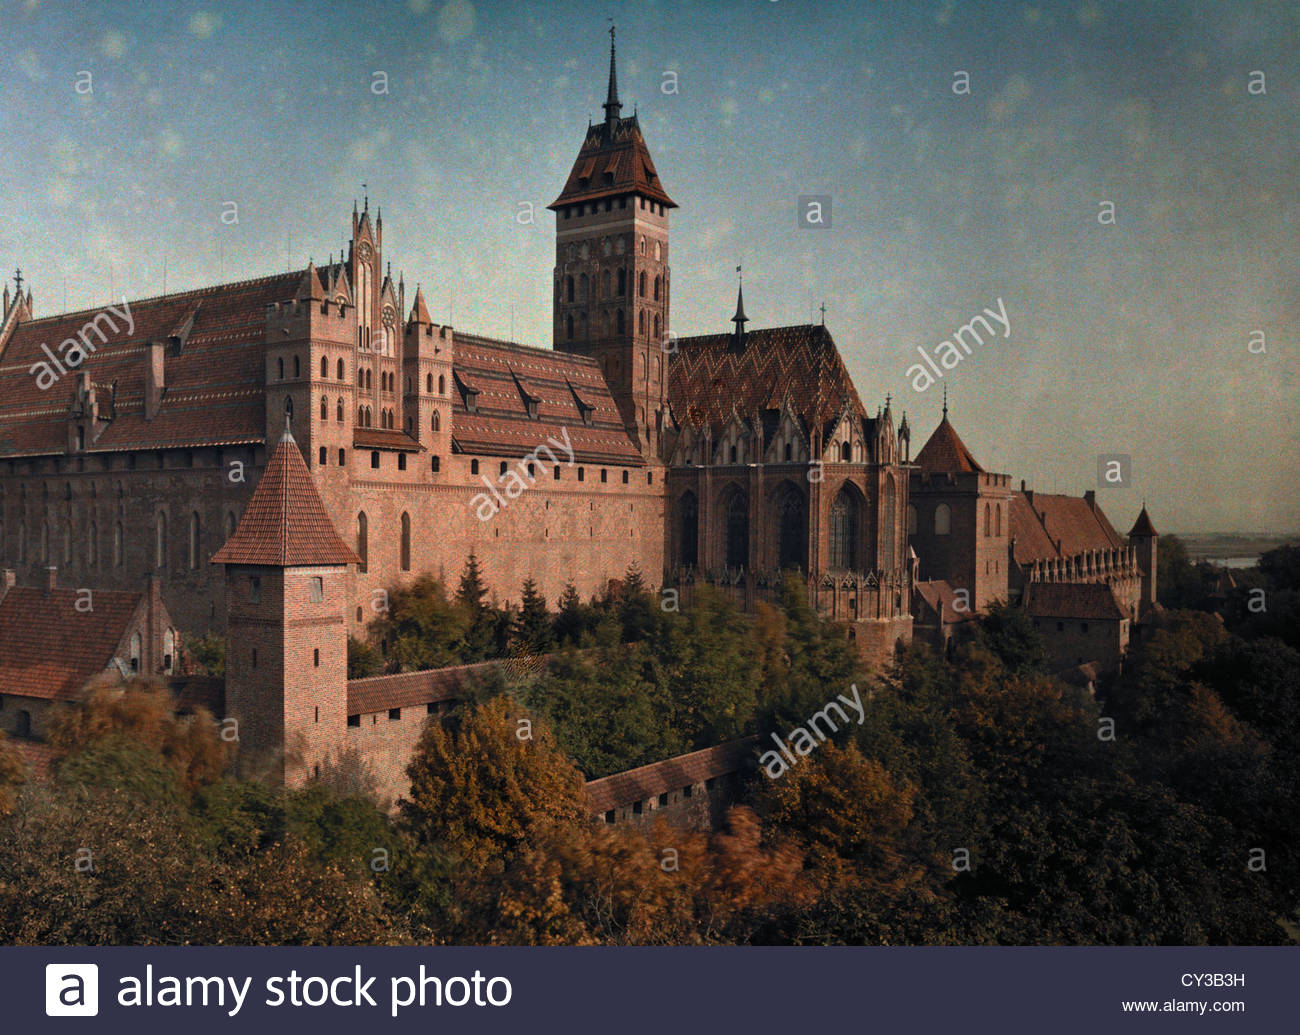 Schloss Marienburg Castle, the most significant of the Teutonic Order. - Stock Image